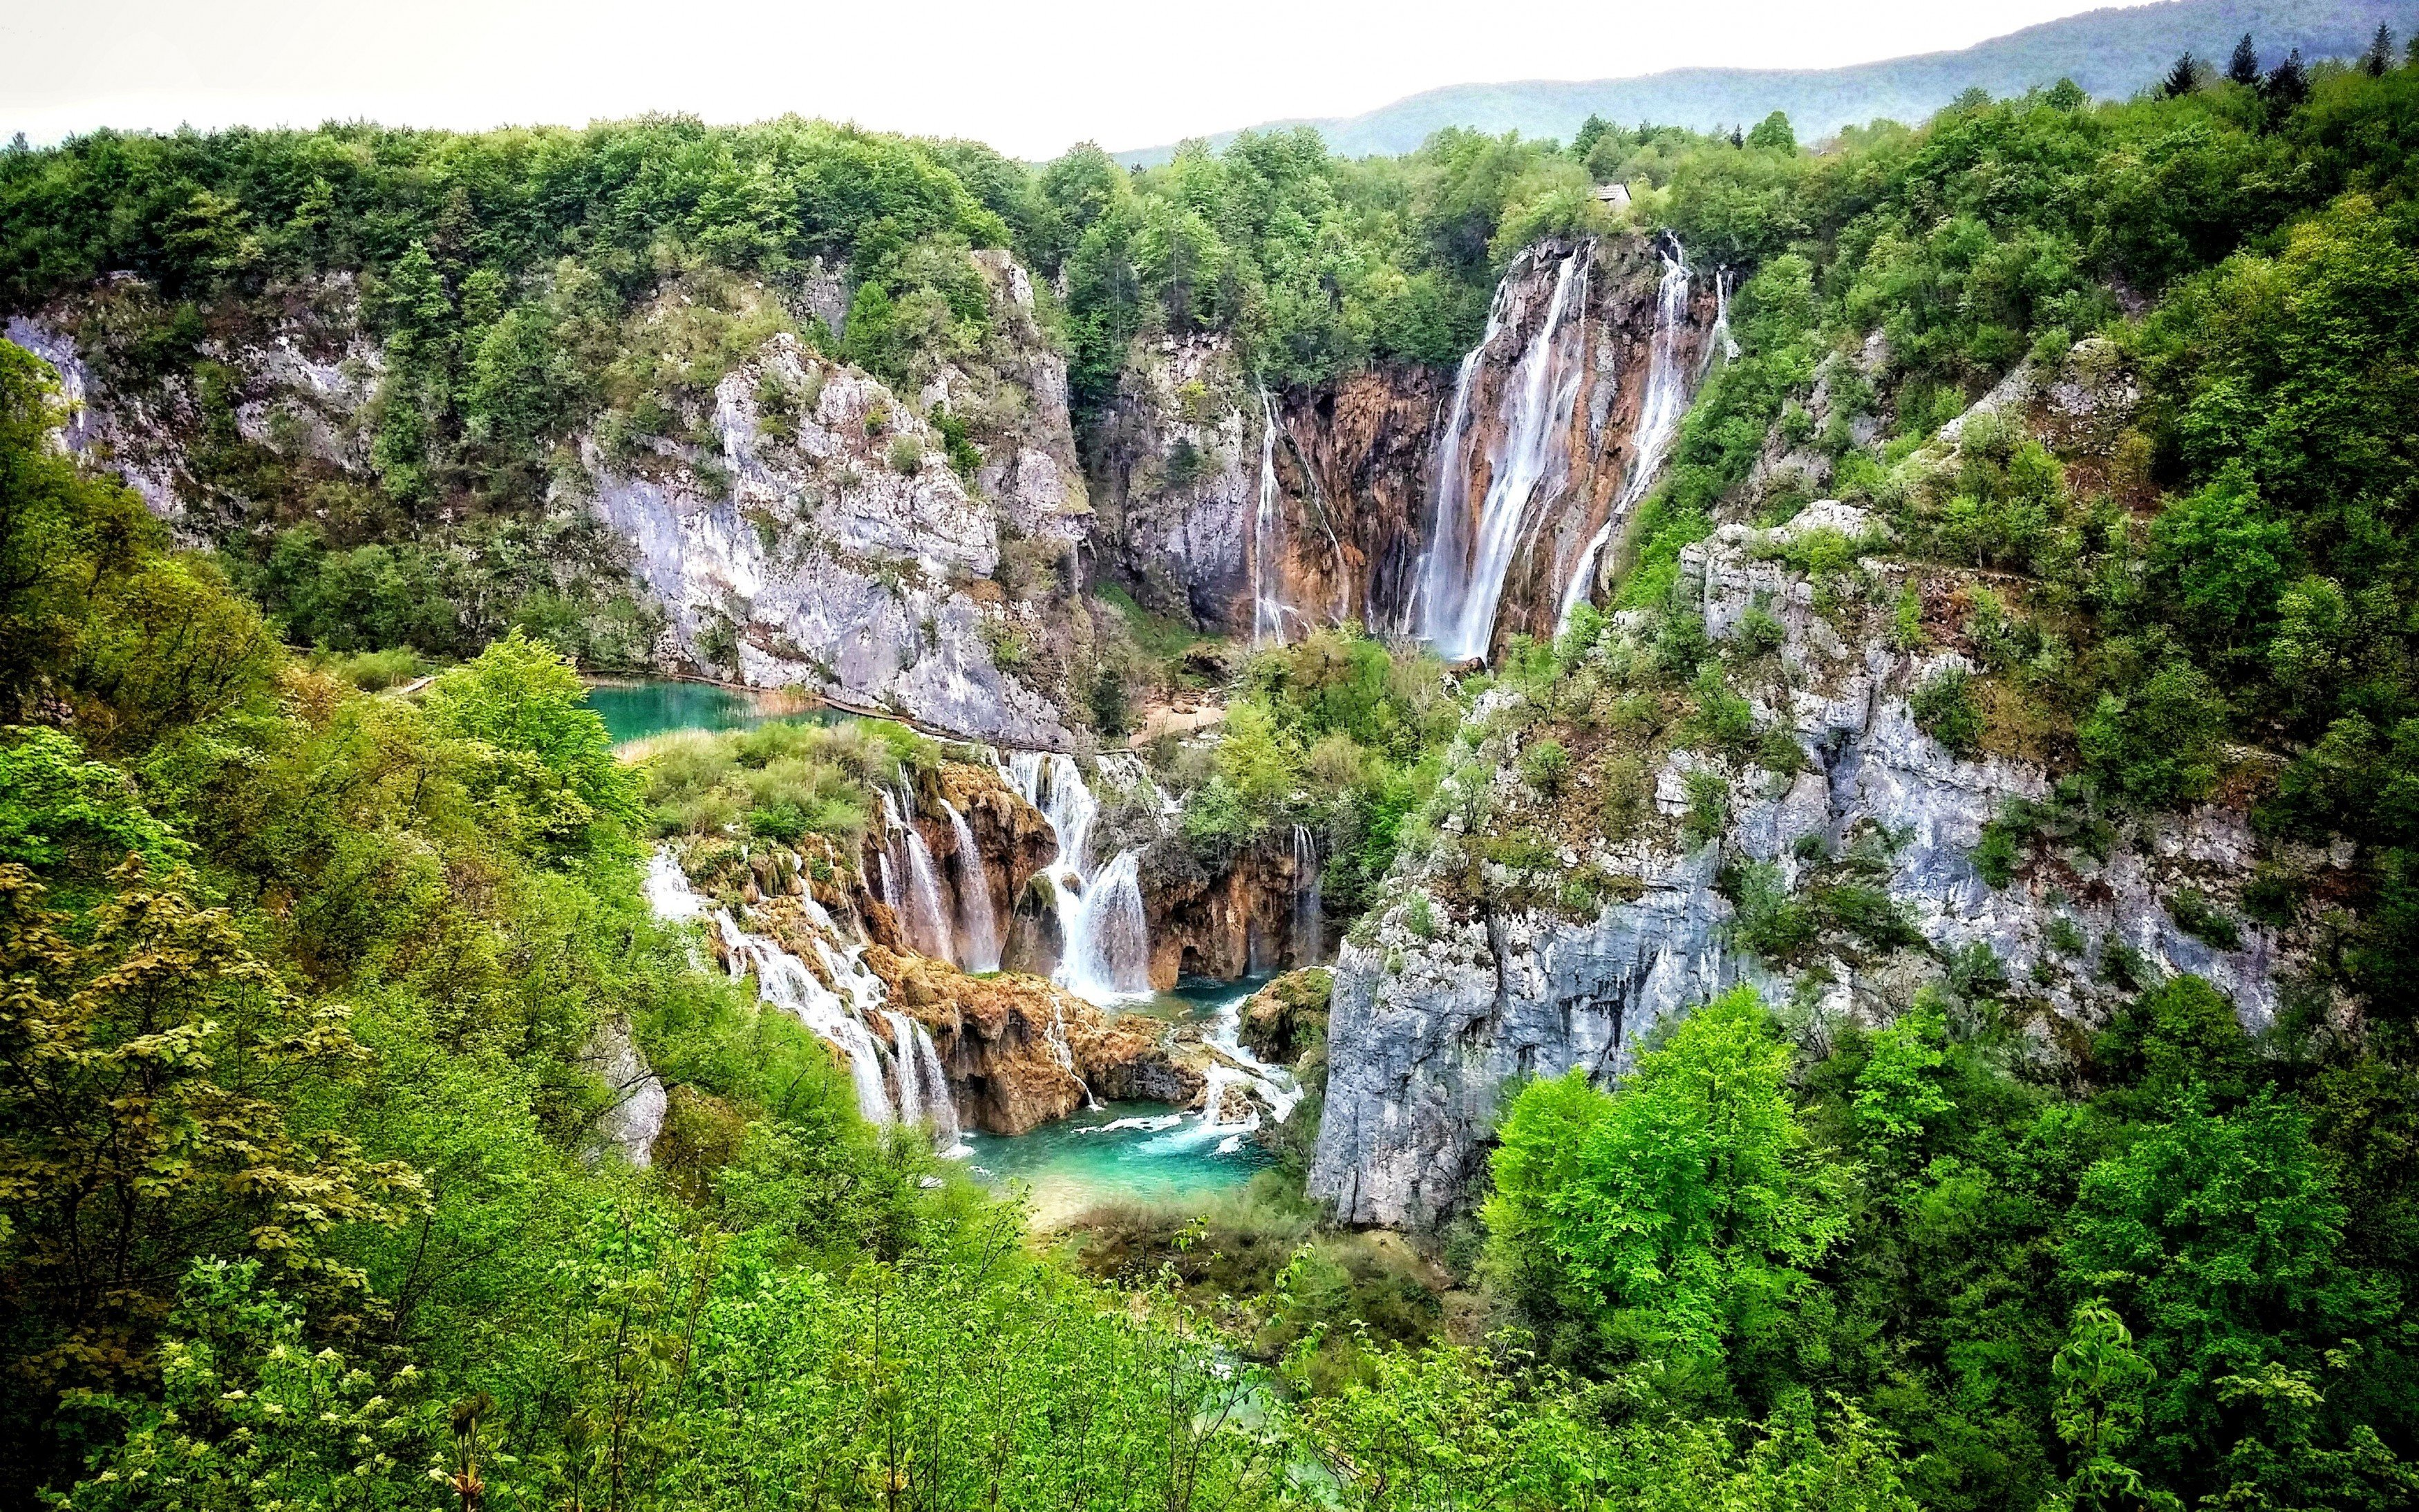 Download 3500x2188 Plitvice Lakes National Park Croatia Mountain 3500x2188